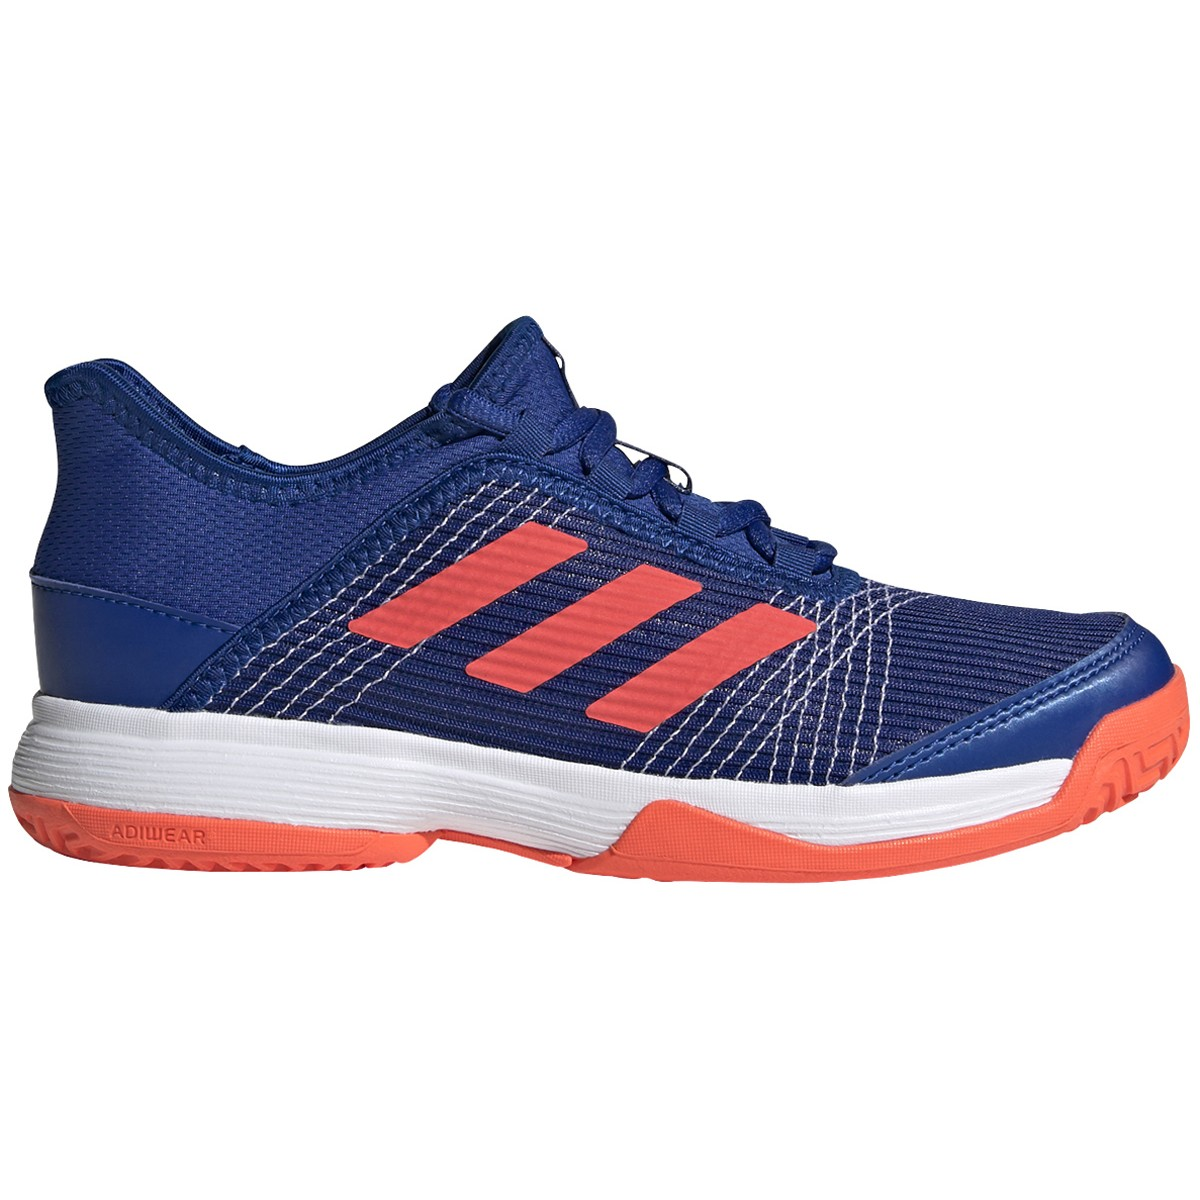 JUNIOR ADIDAS ADIZERO CLUB K ALL COURT SHOES